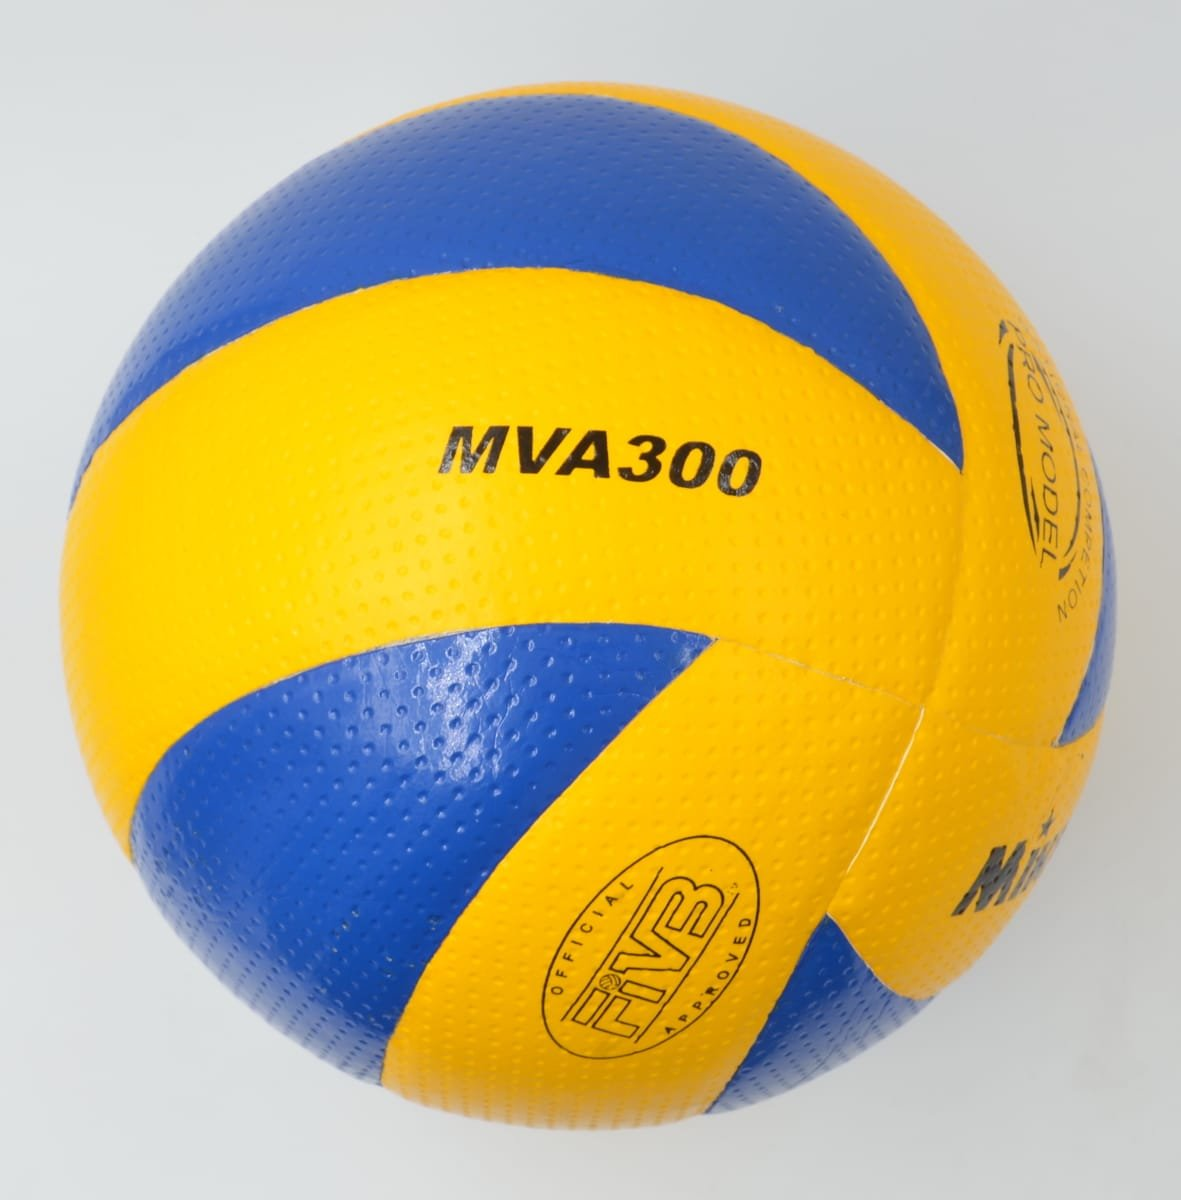 MIKASA JAPAN MVA300 FIVB Official Volleyball Game Ball size:5